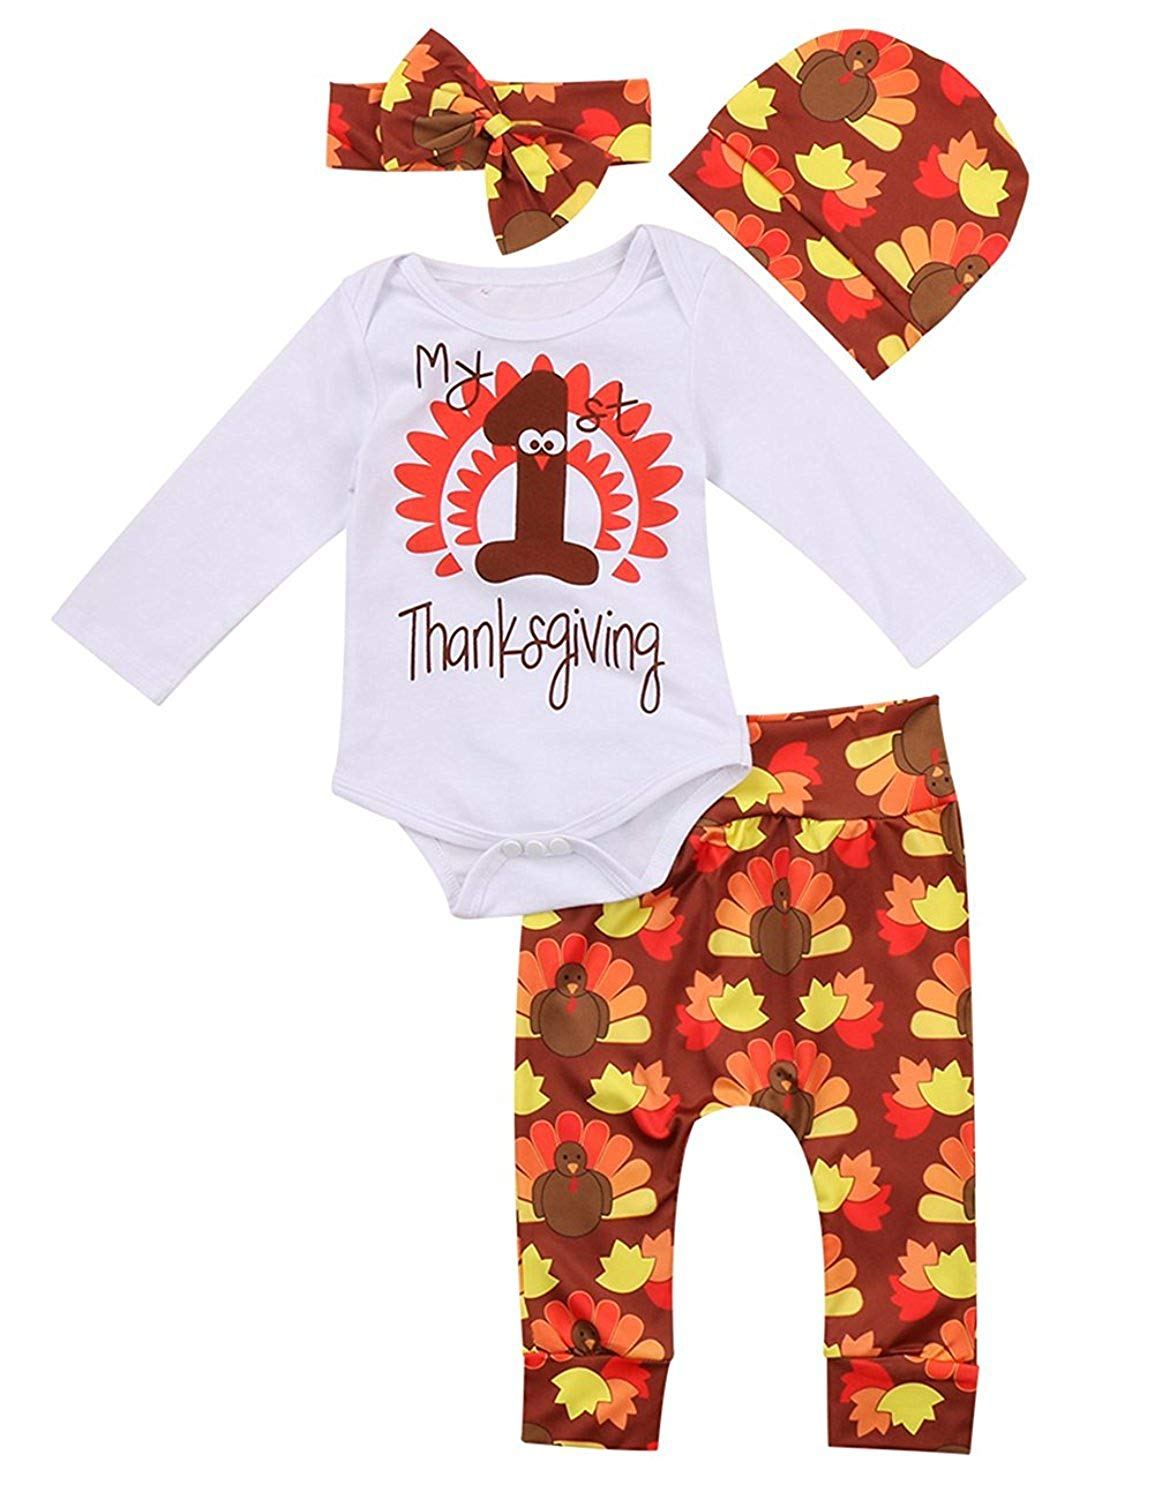 086e19850fea Get Quotations · 4Pcs Baby Thanksgiving Outfit Newborn Boy Girl 1st Thanksgiving  Rompers Turkey Pants with Hat and Headband